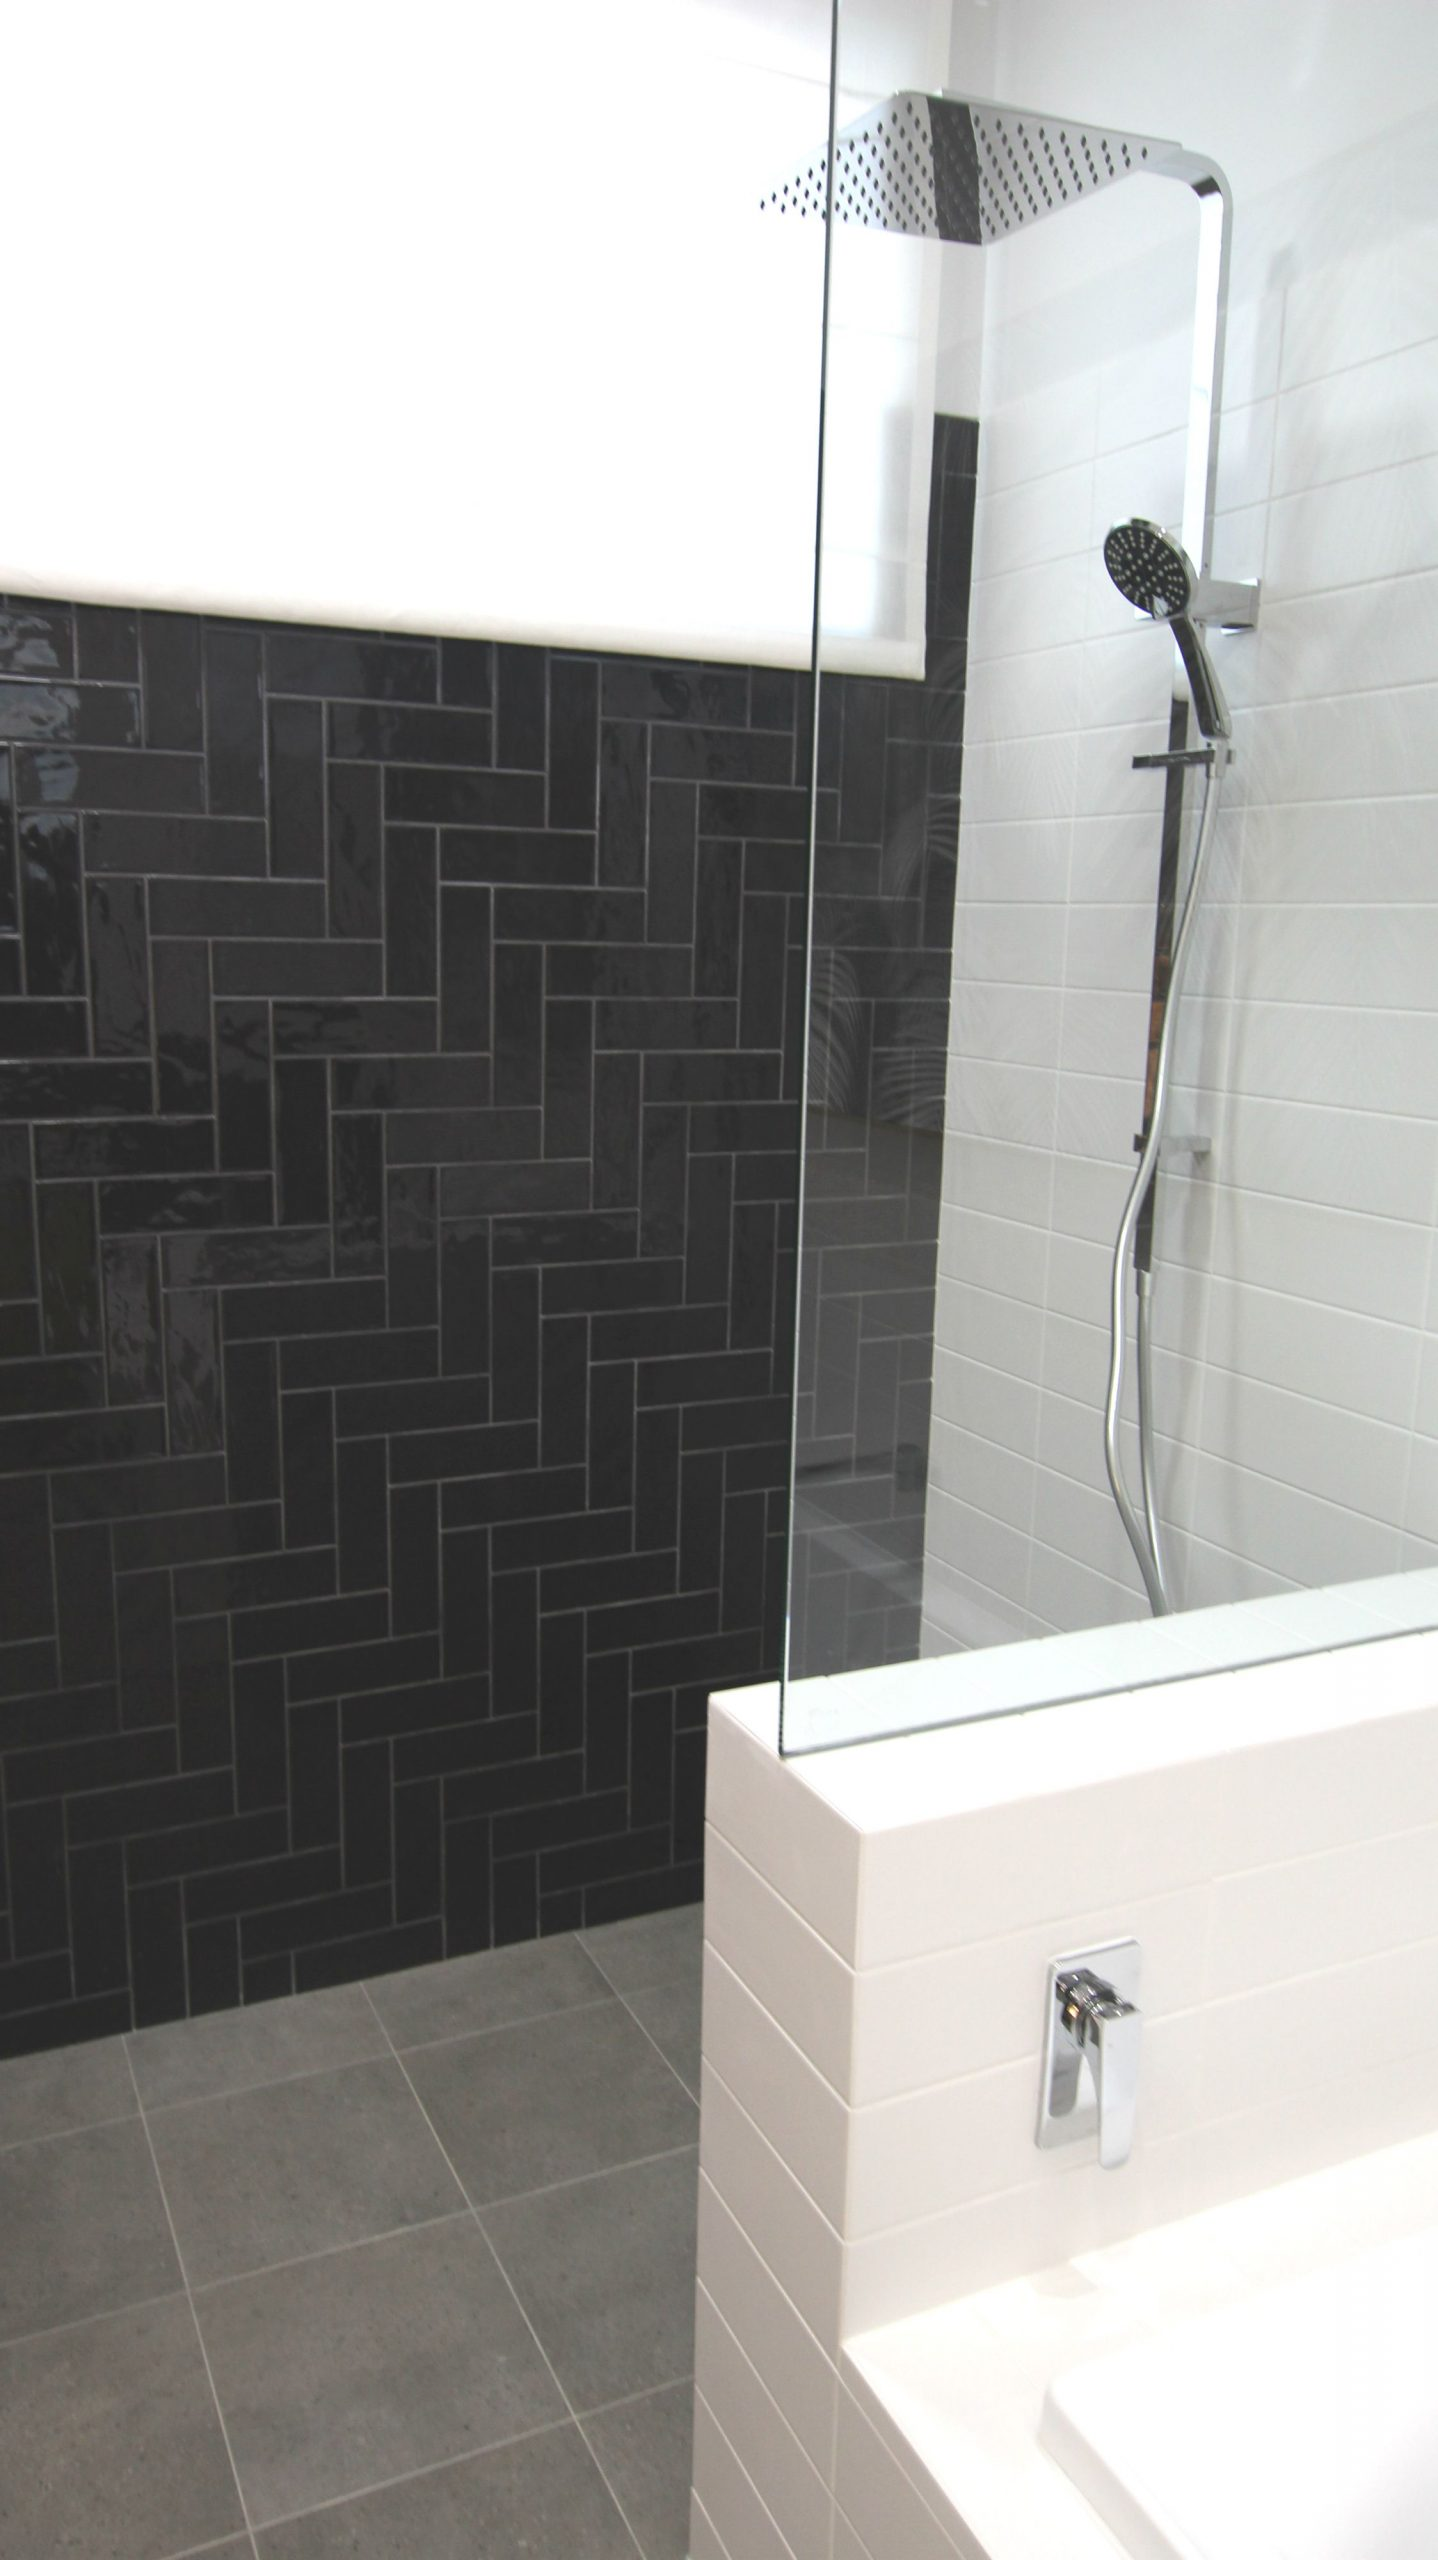 How to ensure your subway tiles don't go out of style 3